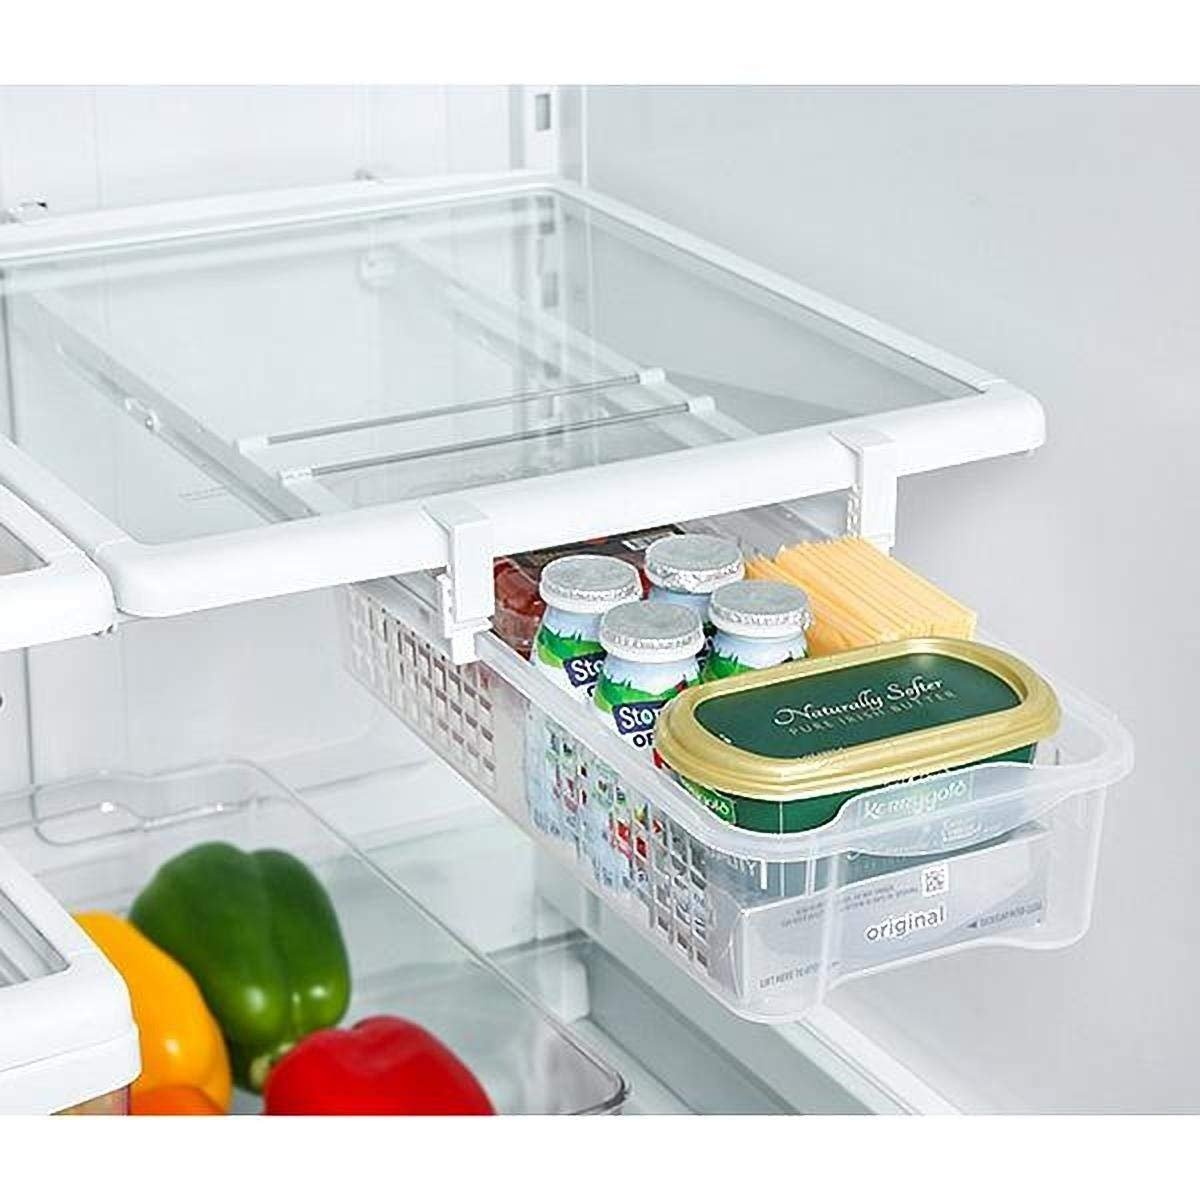 Refrigerator Pull Out Bins & Home Organizer Extendable Rails & Handle - Medium - Holds 15 lbs. - BPA Free - for Fridges & Freezers Food Storage - Kitchen [White]